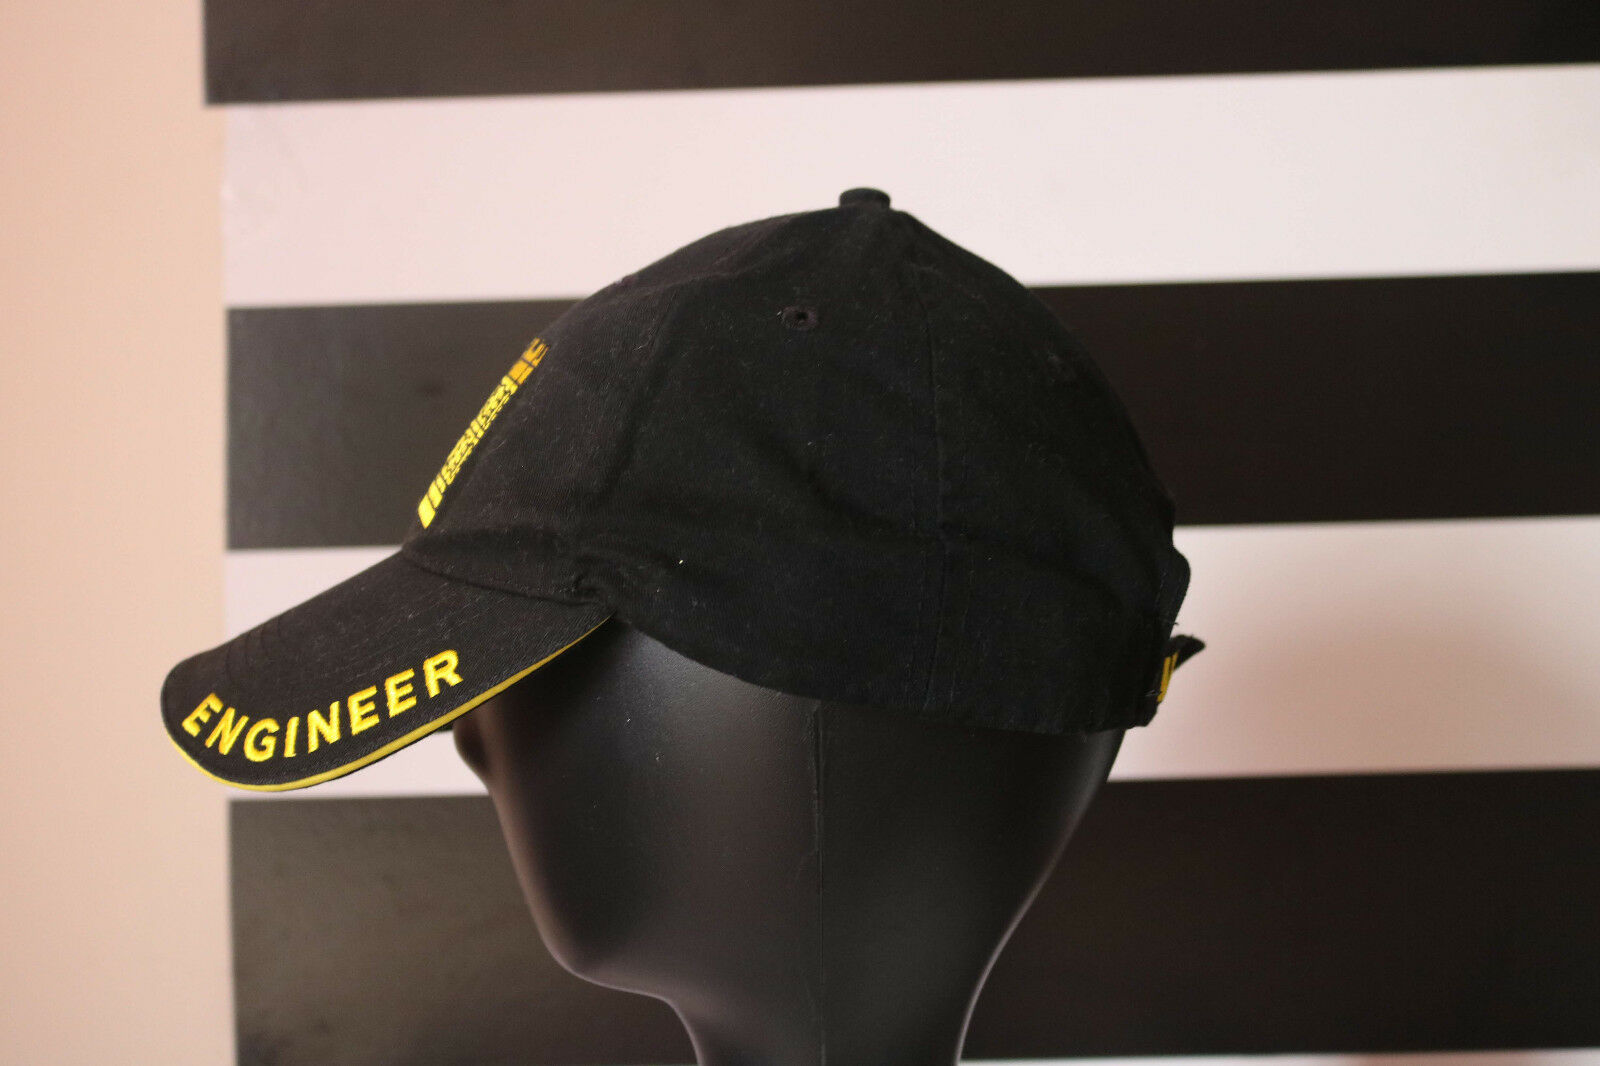 Eagle Crest U.S. Army Engineer Hat / Black Baseball Size Cap 100% Cotton One Size Baseball 0d0f82